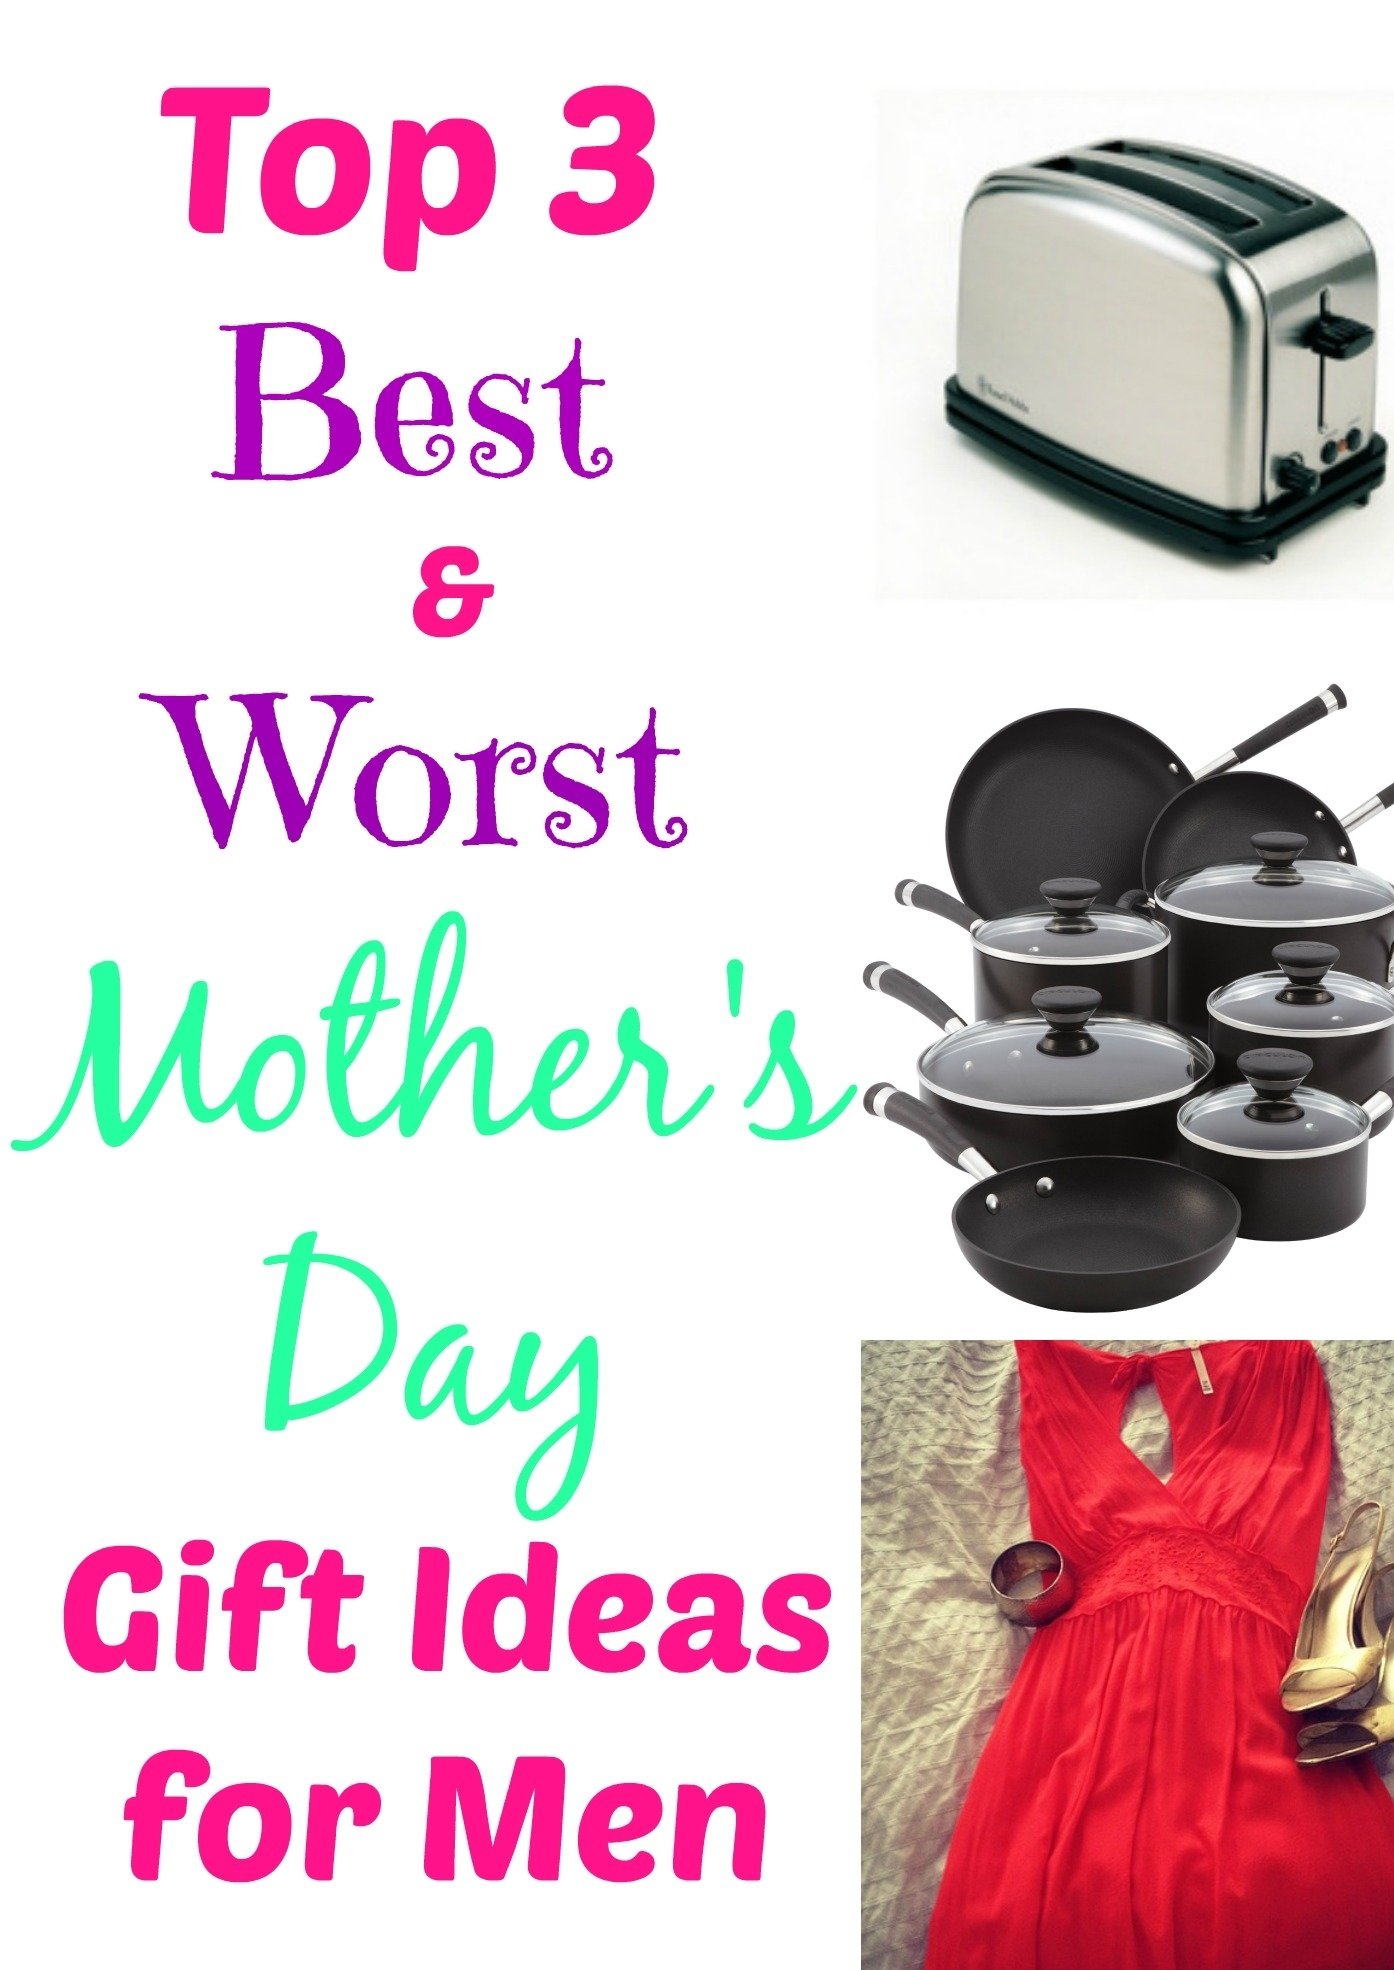 10 Cute Good Mothers Day Gifts Ideas top 3 best worst mothers day gift ideas for men 6 2021